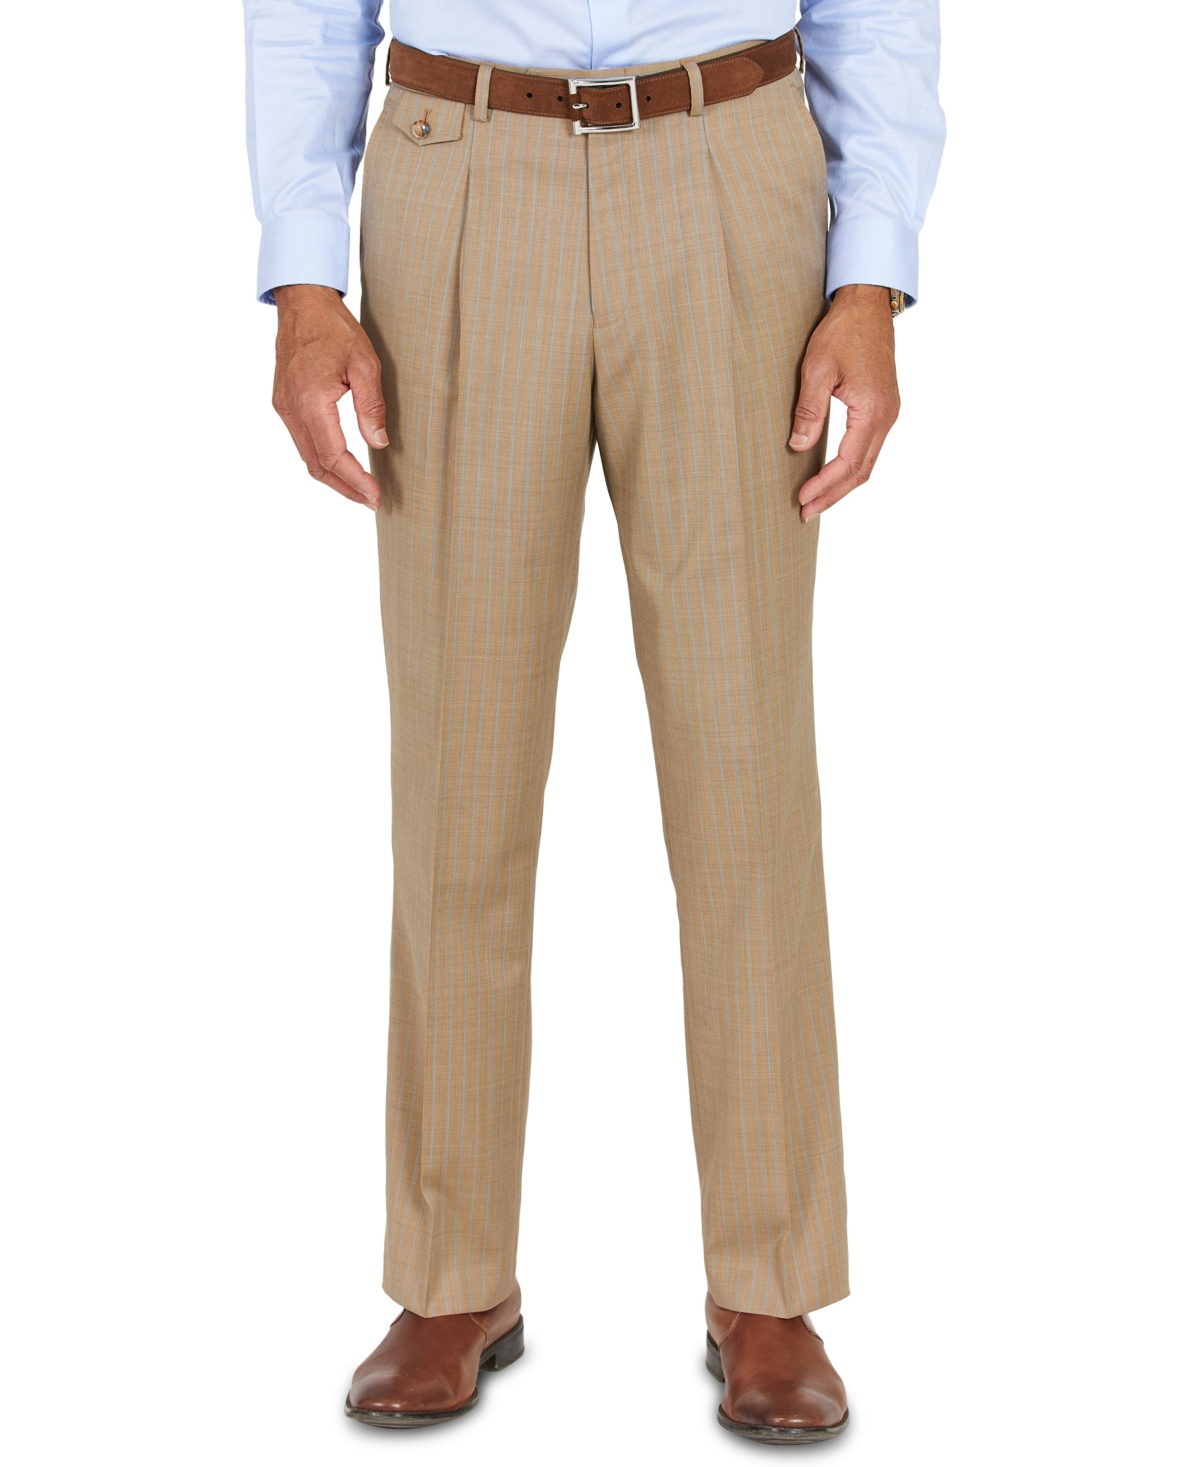 1950s Men's Pants, Trousers, Shorts | Rockabilly Jeans, Greaser Styles Tayion Collection Mens Classic-Fit Taupe with Teal Stripe Suit Separates Pants $50.00 AT vintagedancer.com